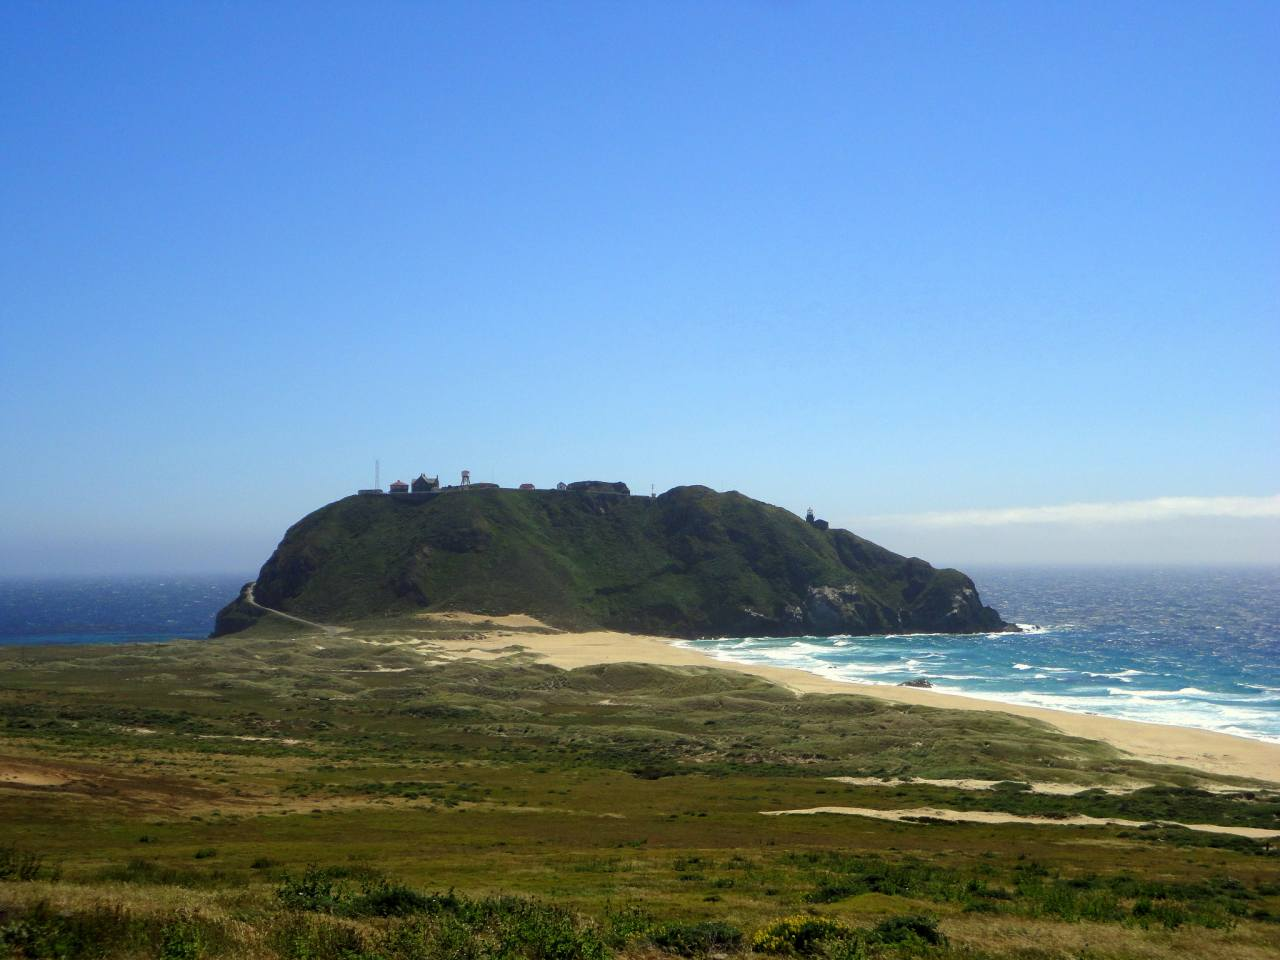 Point Sur State Historic Park, Big Sur, California, Visit in USA